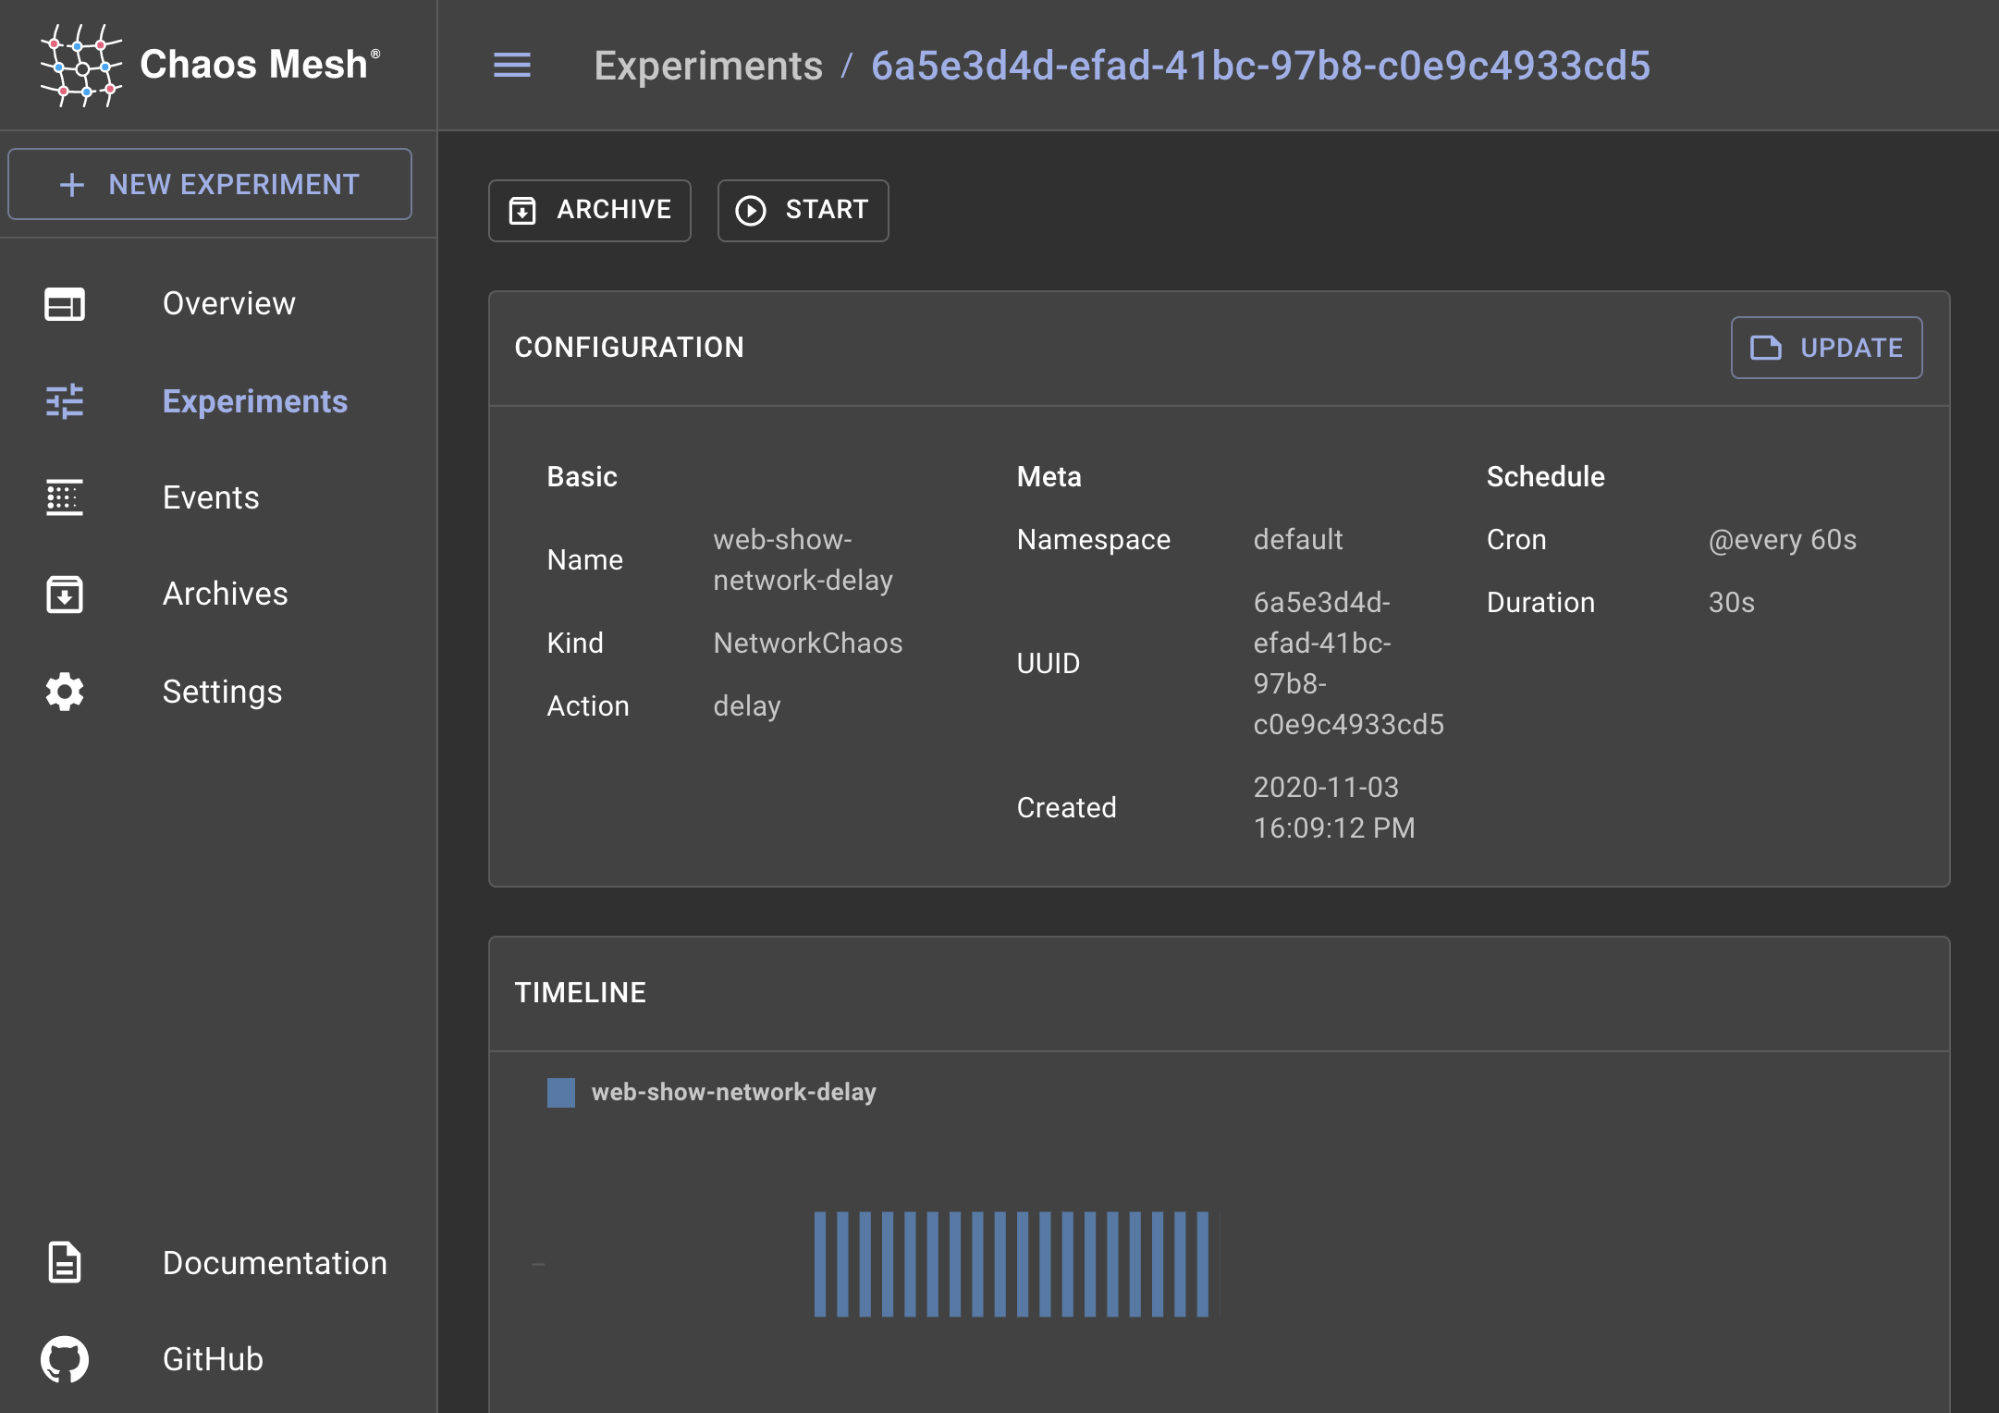 Chaos Mesh dashboard showing an experiment configured to run every 60 seconds.